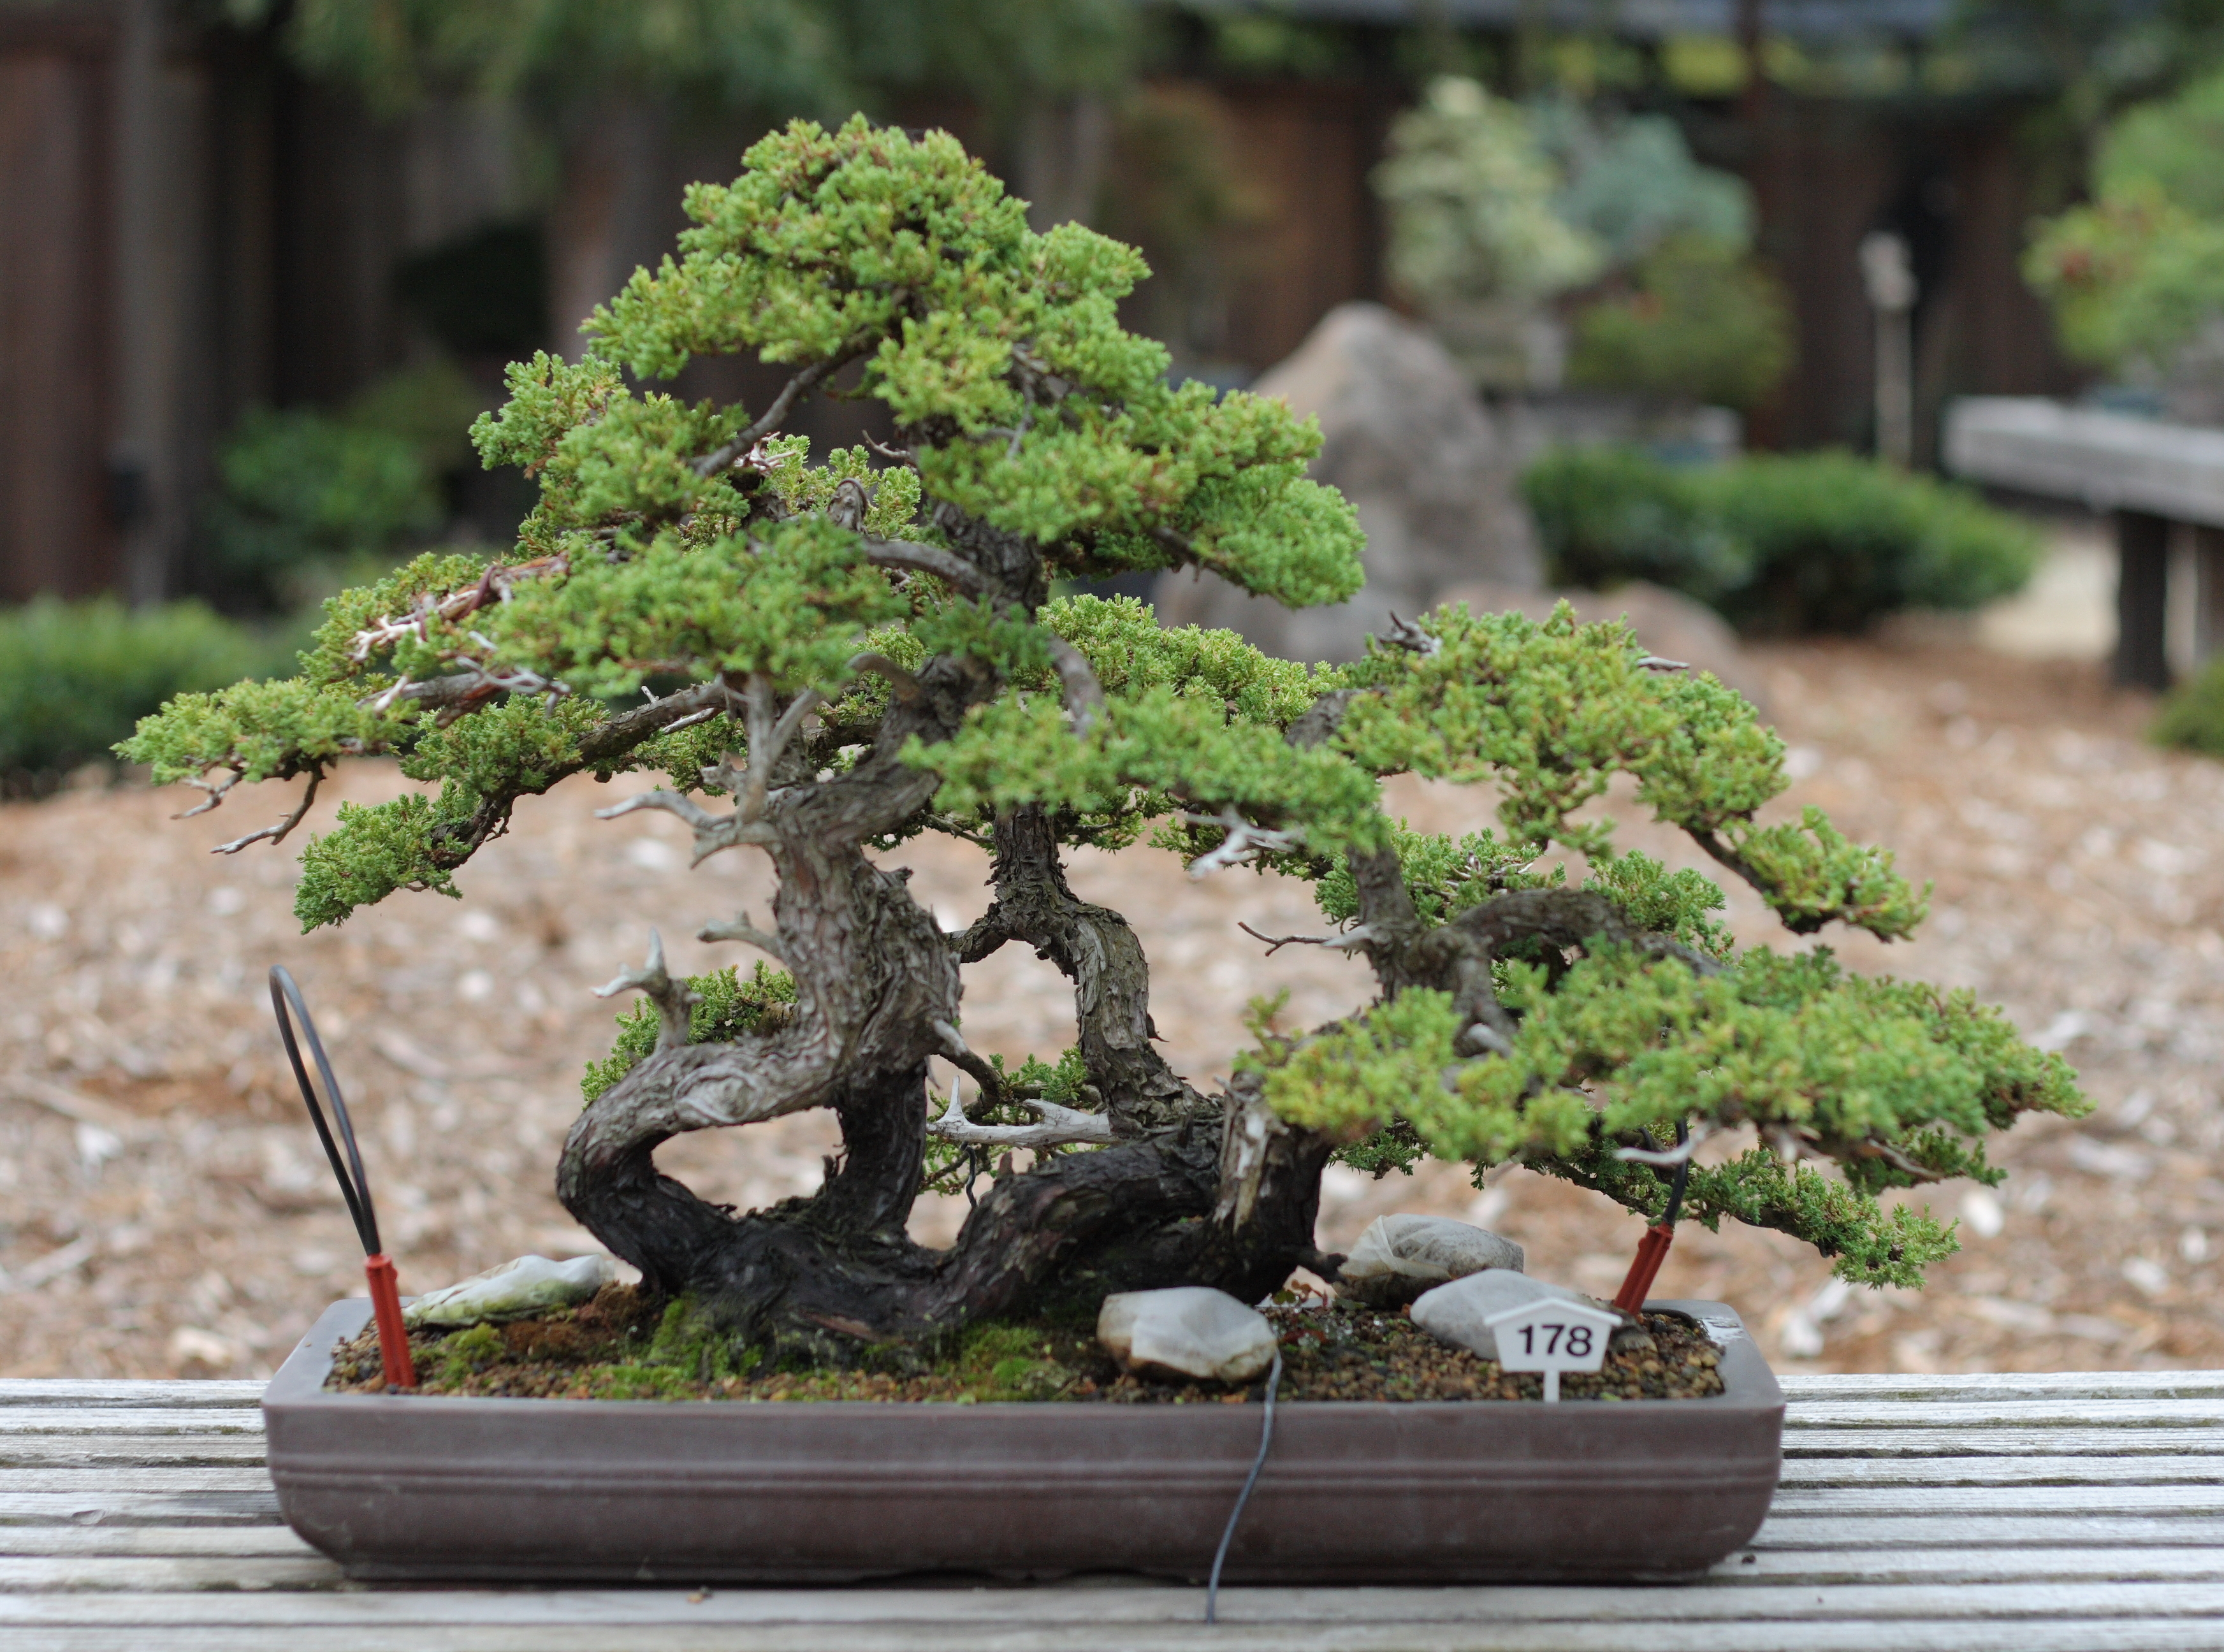 file dwarf japanese garden juniper gsbf cn 178 september 12 wikimedia commons. Black Bedroom Furniture Sets. Home Design Ideas